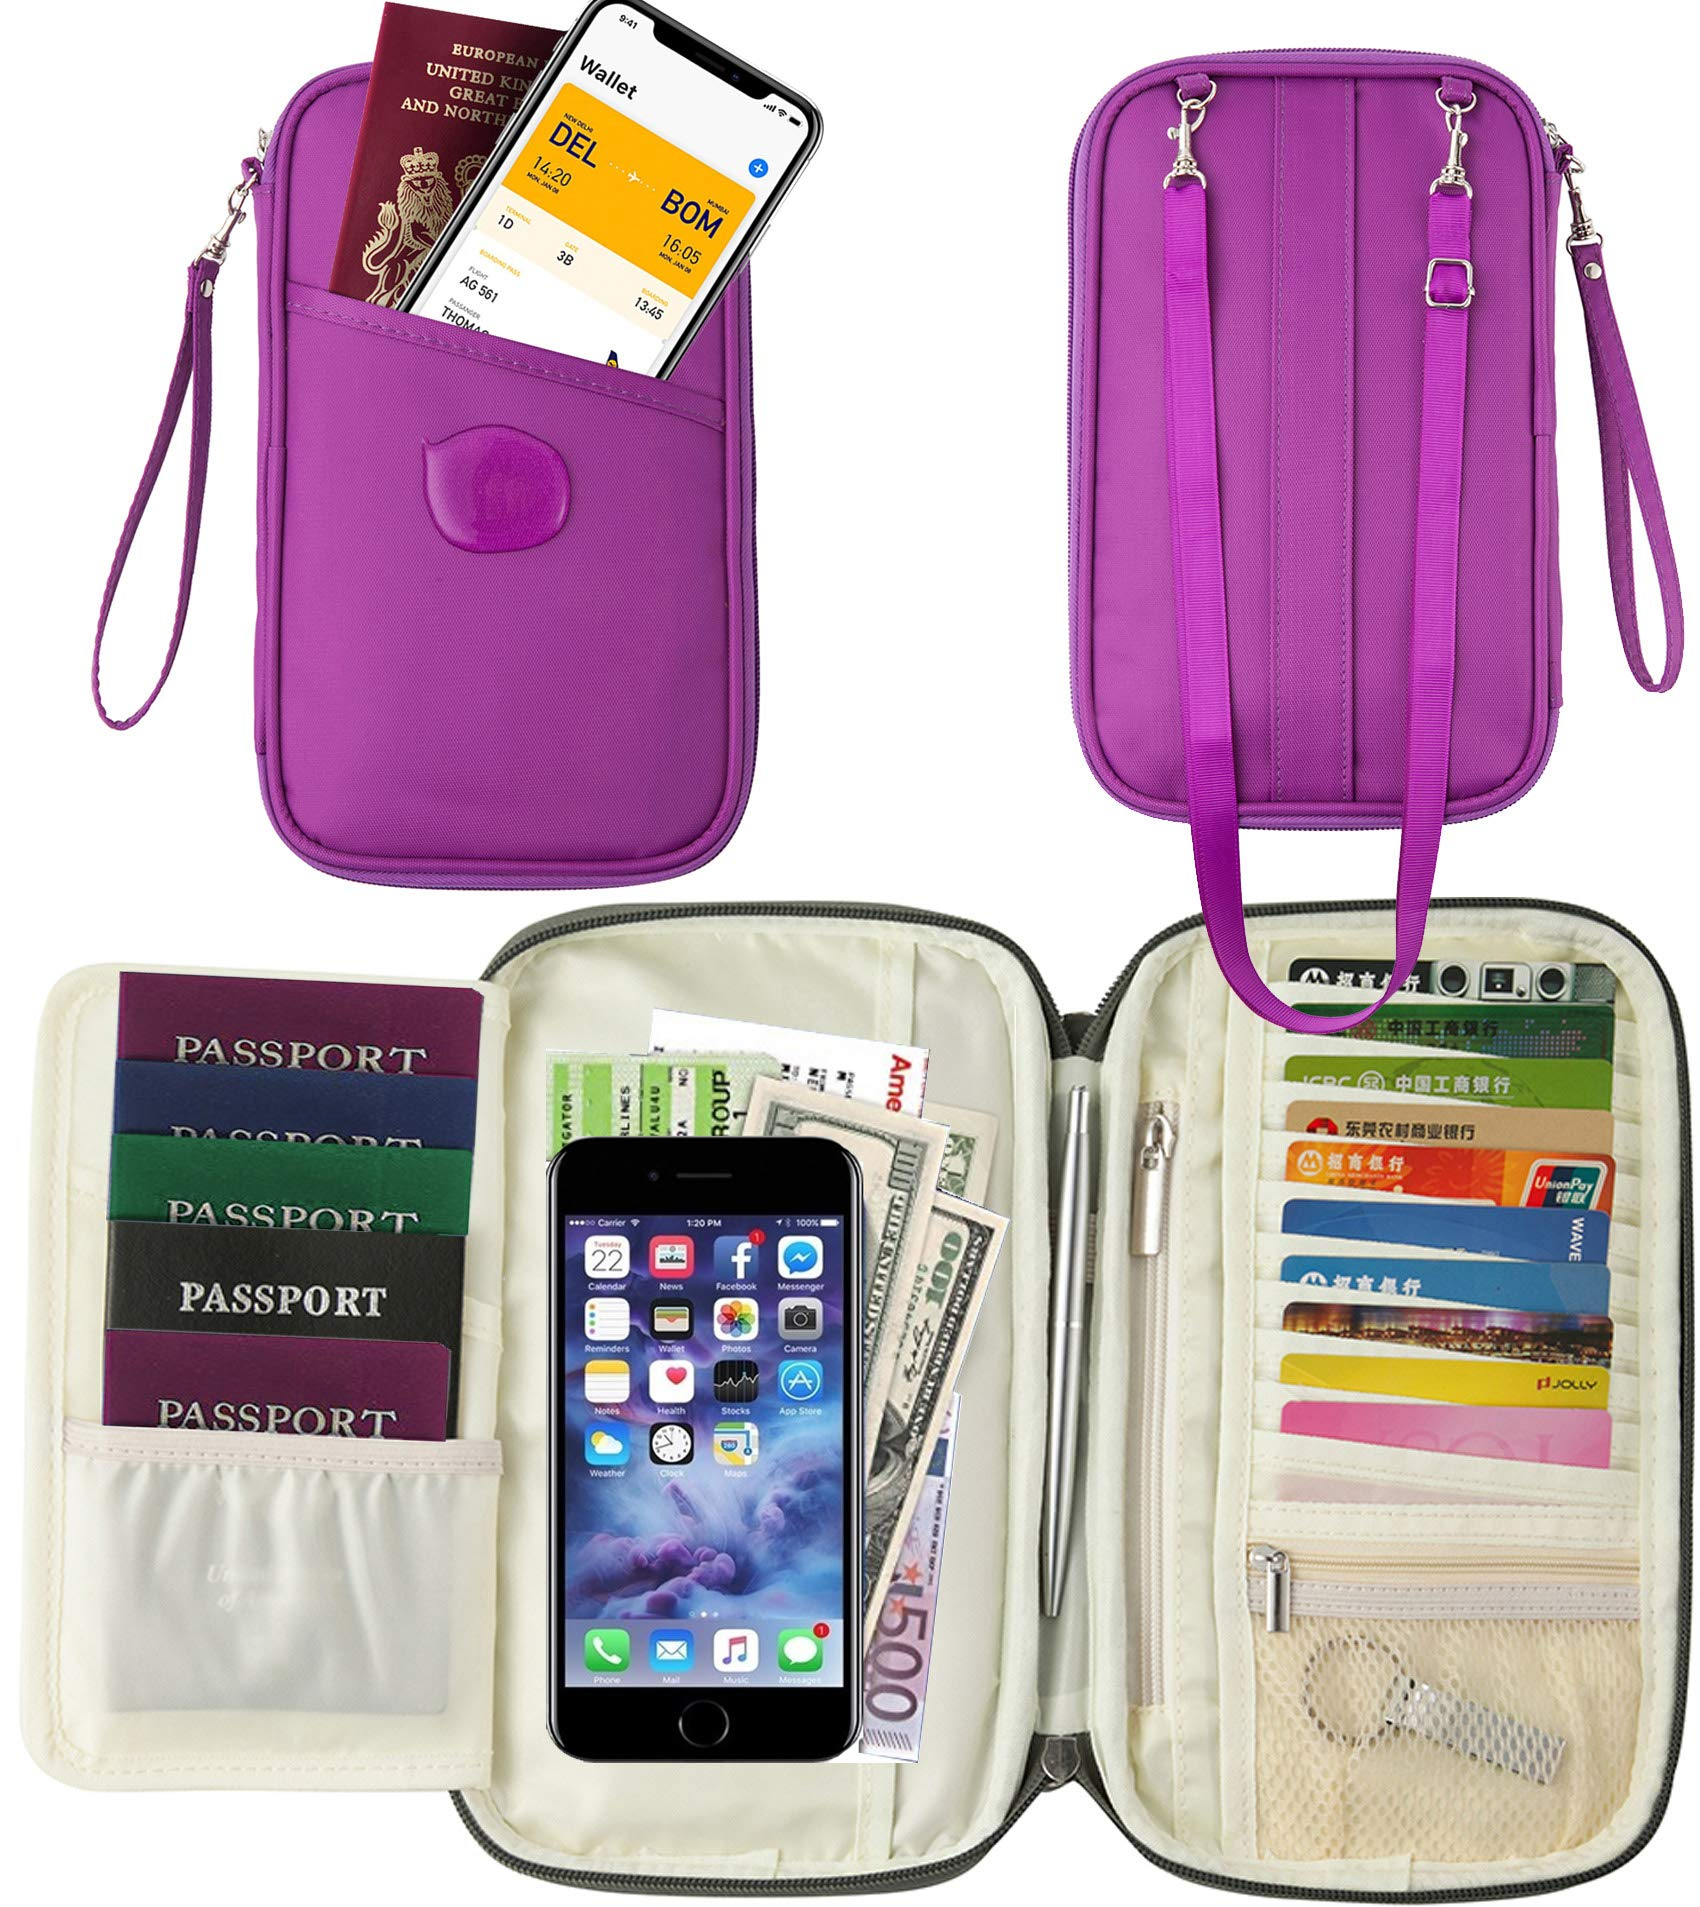 Passport Wallet Holder for Men&Women, w/RFID Blocking Document Holder Organiser Purple Travel Wallet Phone Card Case Secured Holiday Money Pouch with Designer Luggage Belt Strap (fashion purple)